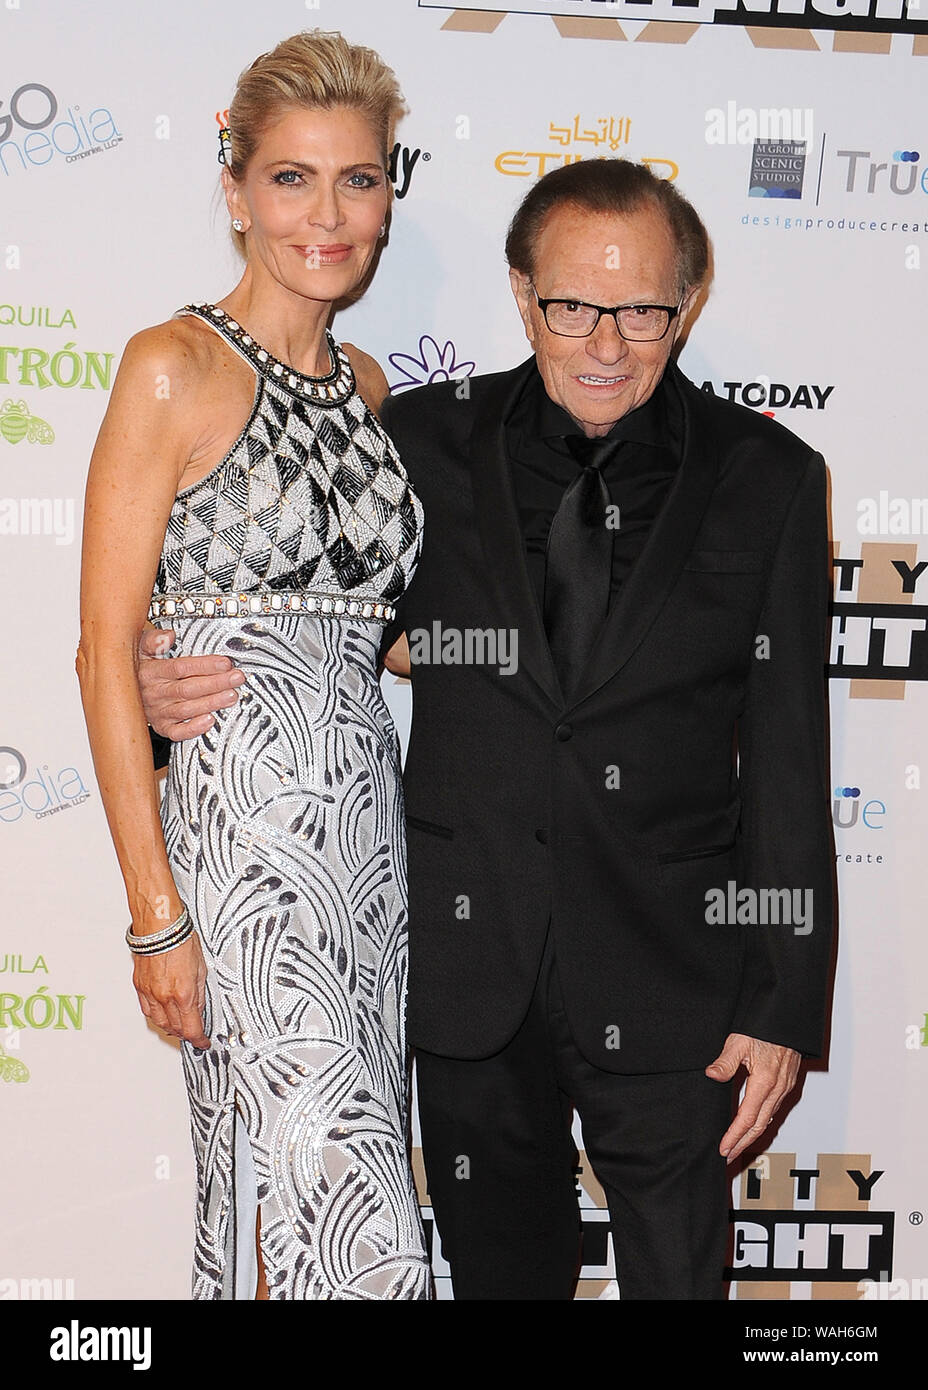 File Photo Larry King Files For Divorce From Wife Shawn King Phoenix Az April 9 Shawn King And Larry King At Muhammad Ali S Celebrity Fight Night Xxii At The Jw Marriott